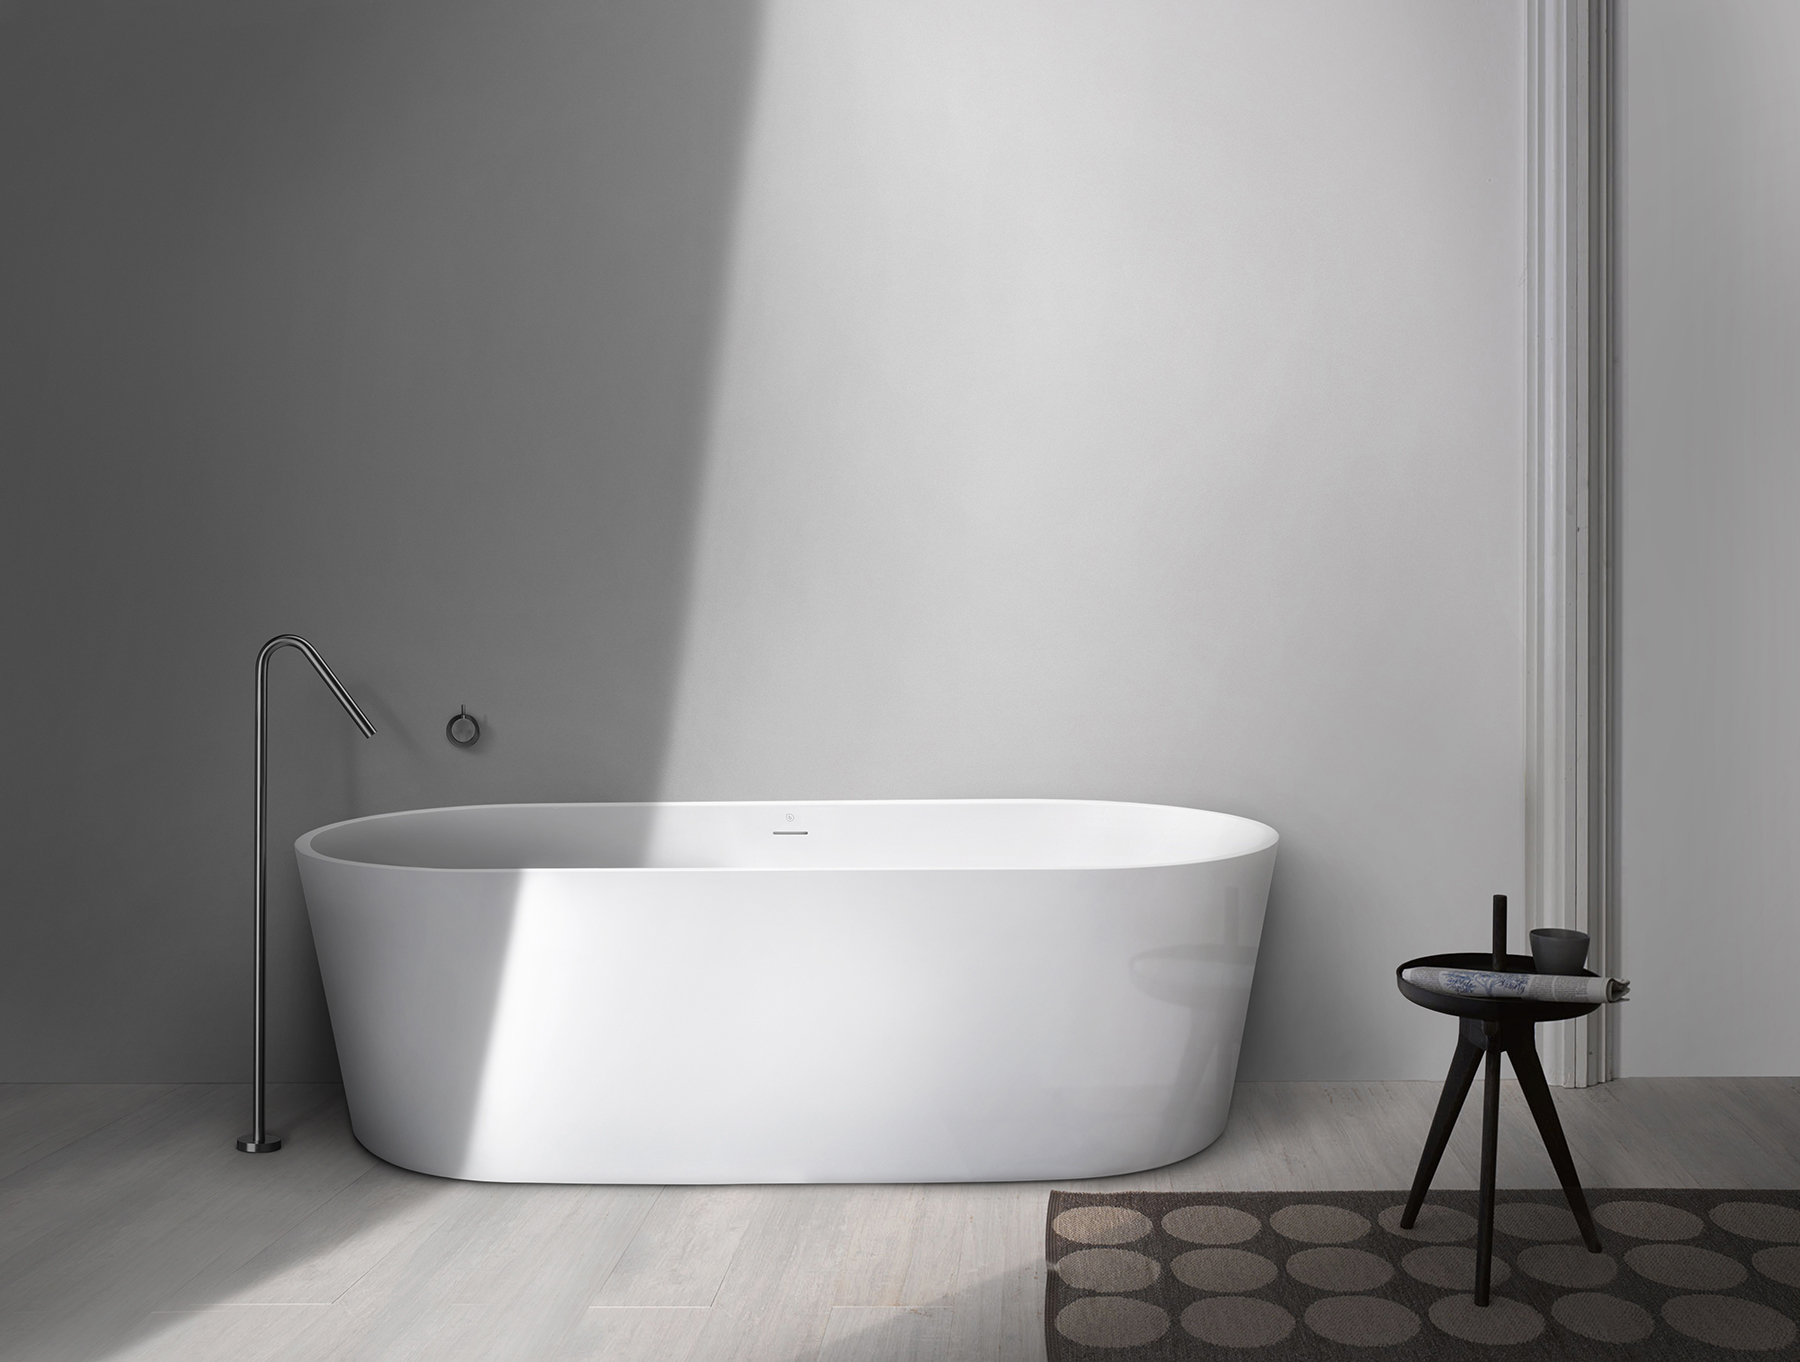 Modern Pisa Freestanding Oval Bathtub